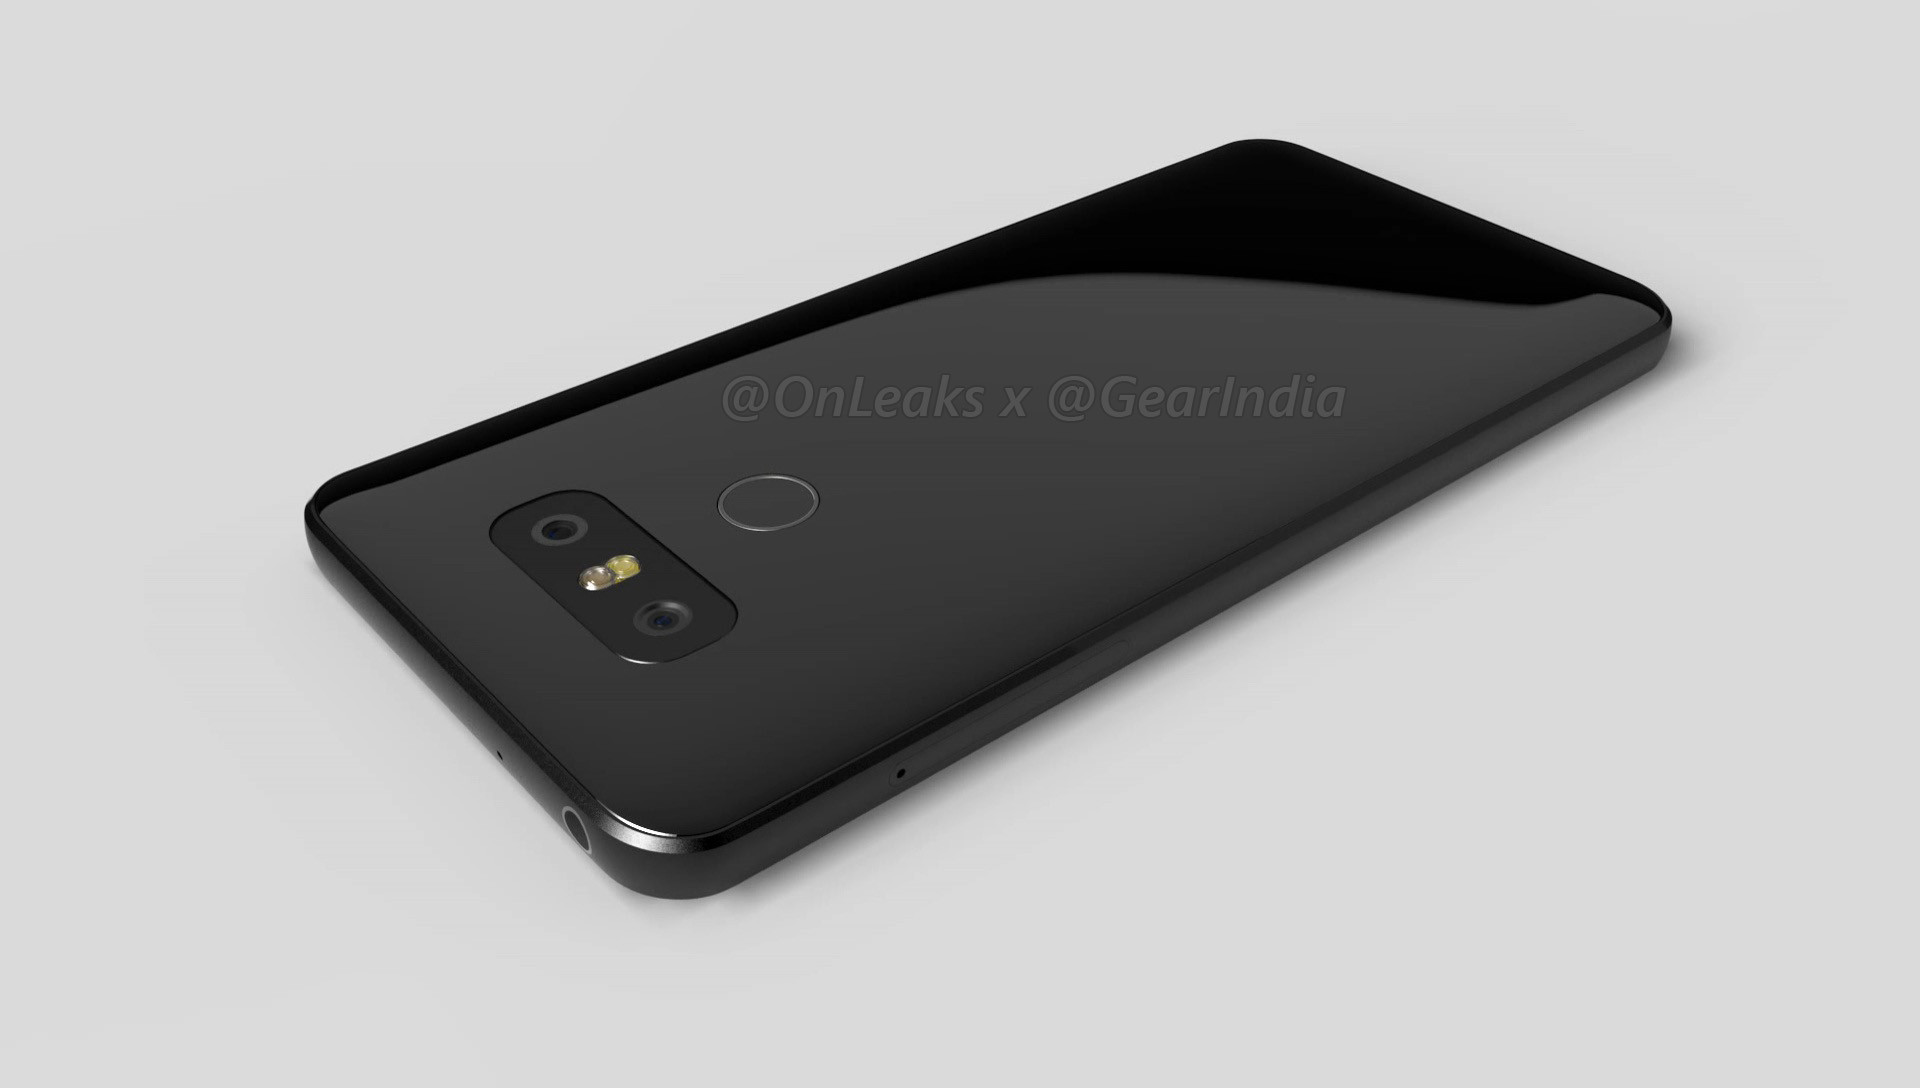 1482906375_renders-of-lg-g6-based-on-factory-cad-images-3.jpg